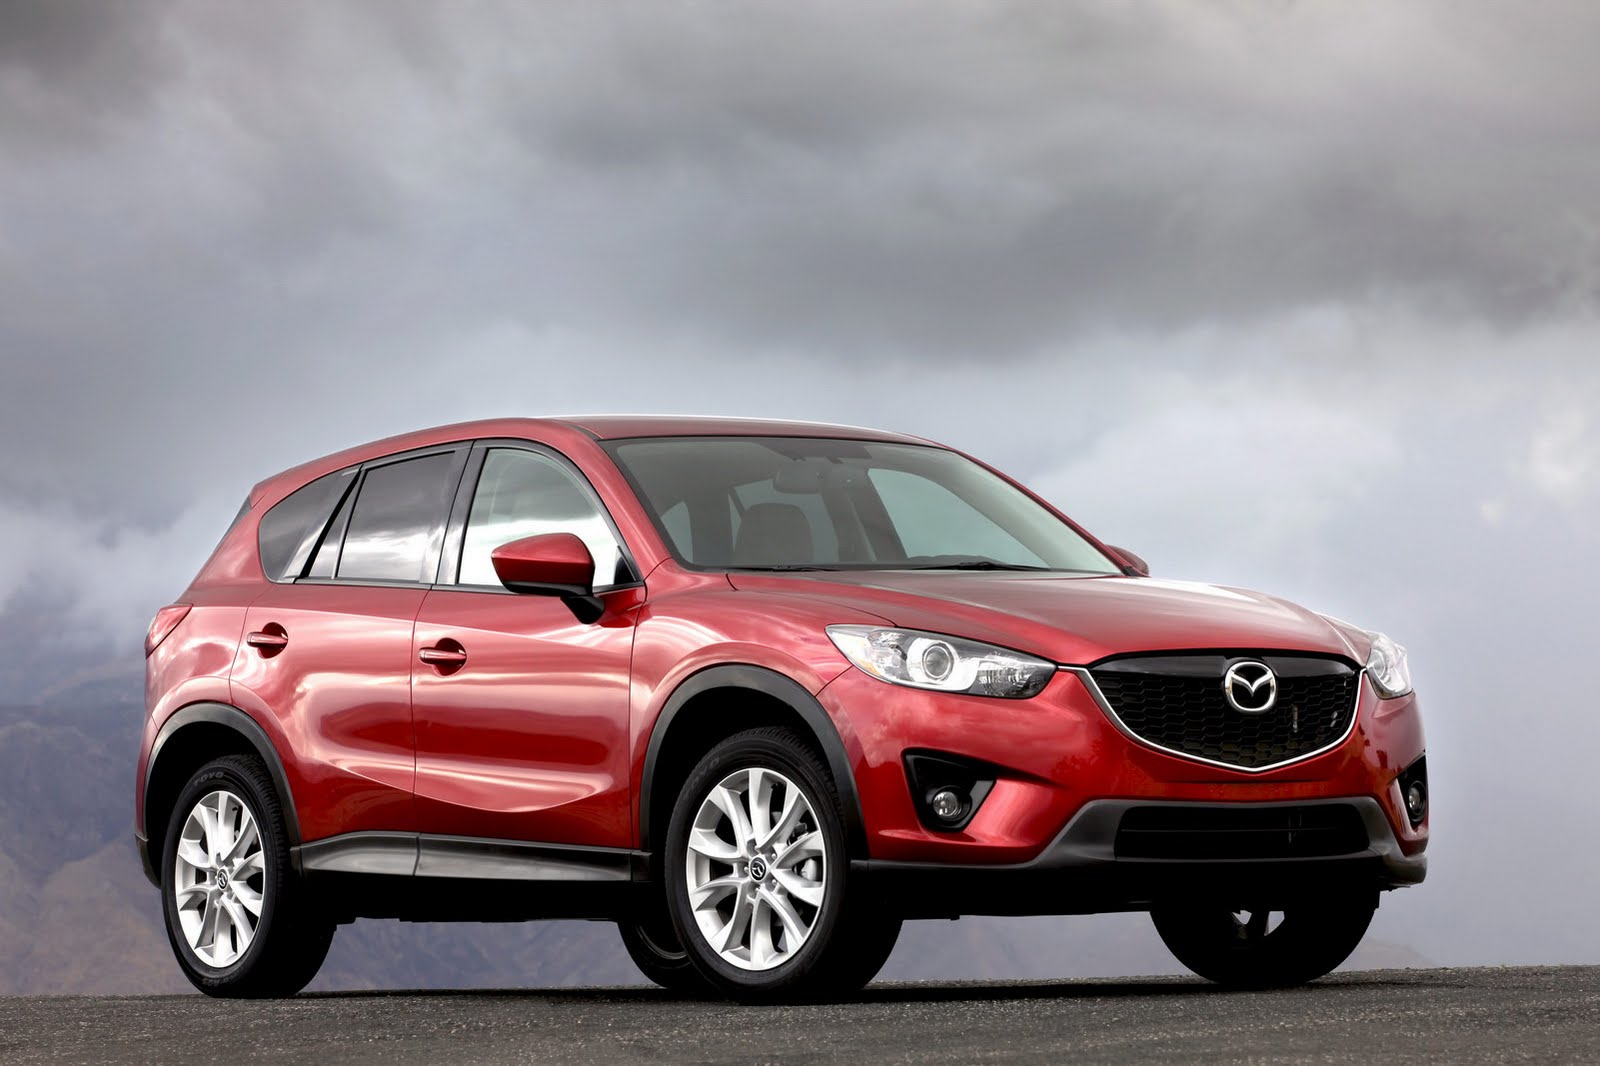 2013 mazda cx 5 debuts in los angeles with 33 mpg highway autoevolution. Black Bedroom Furniture Sets. Home Design Ideas